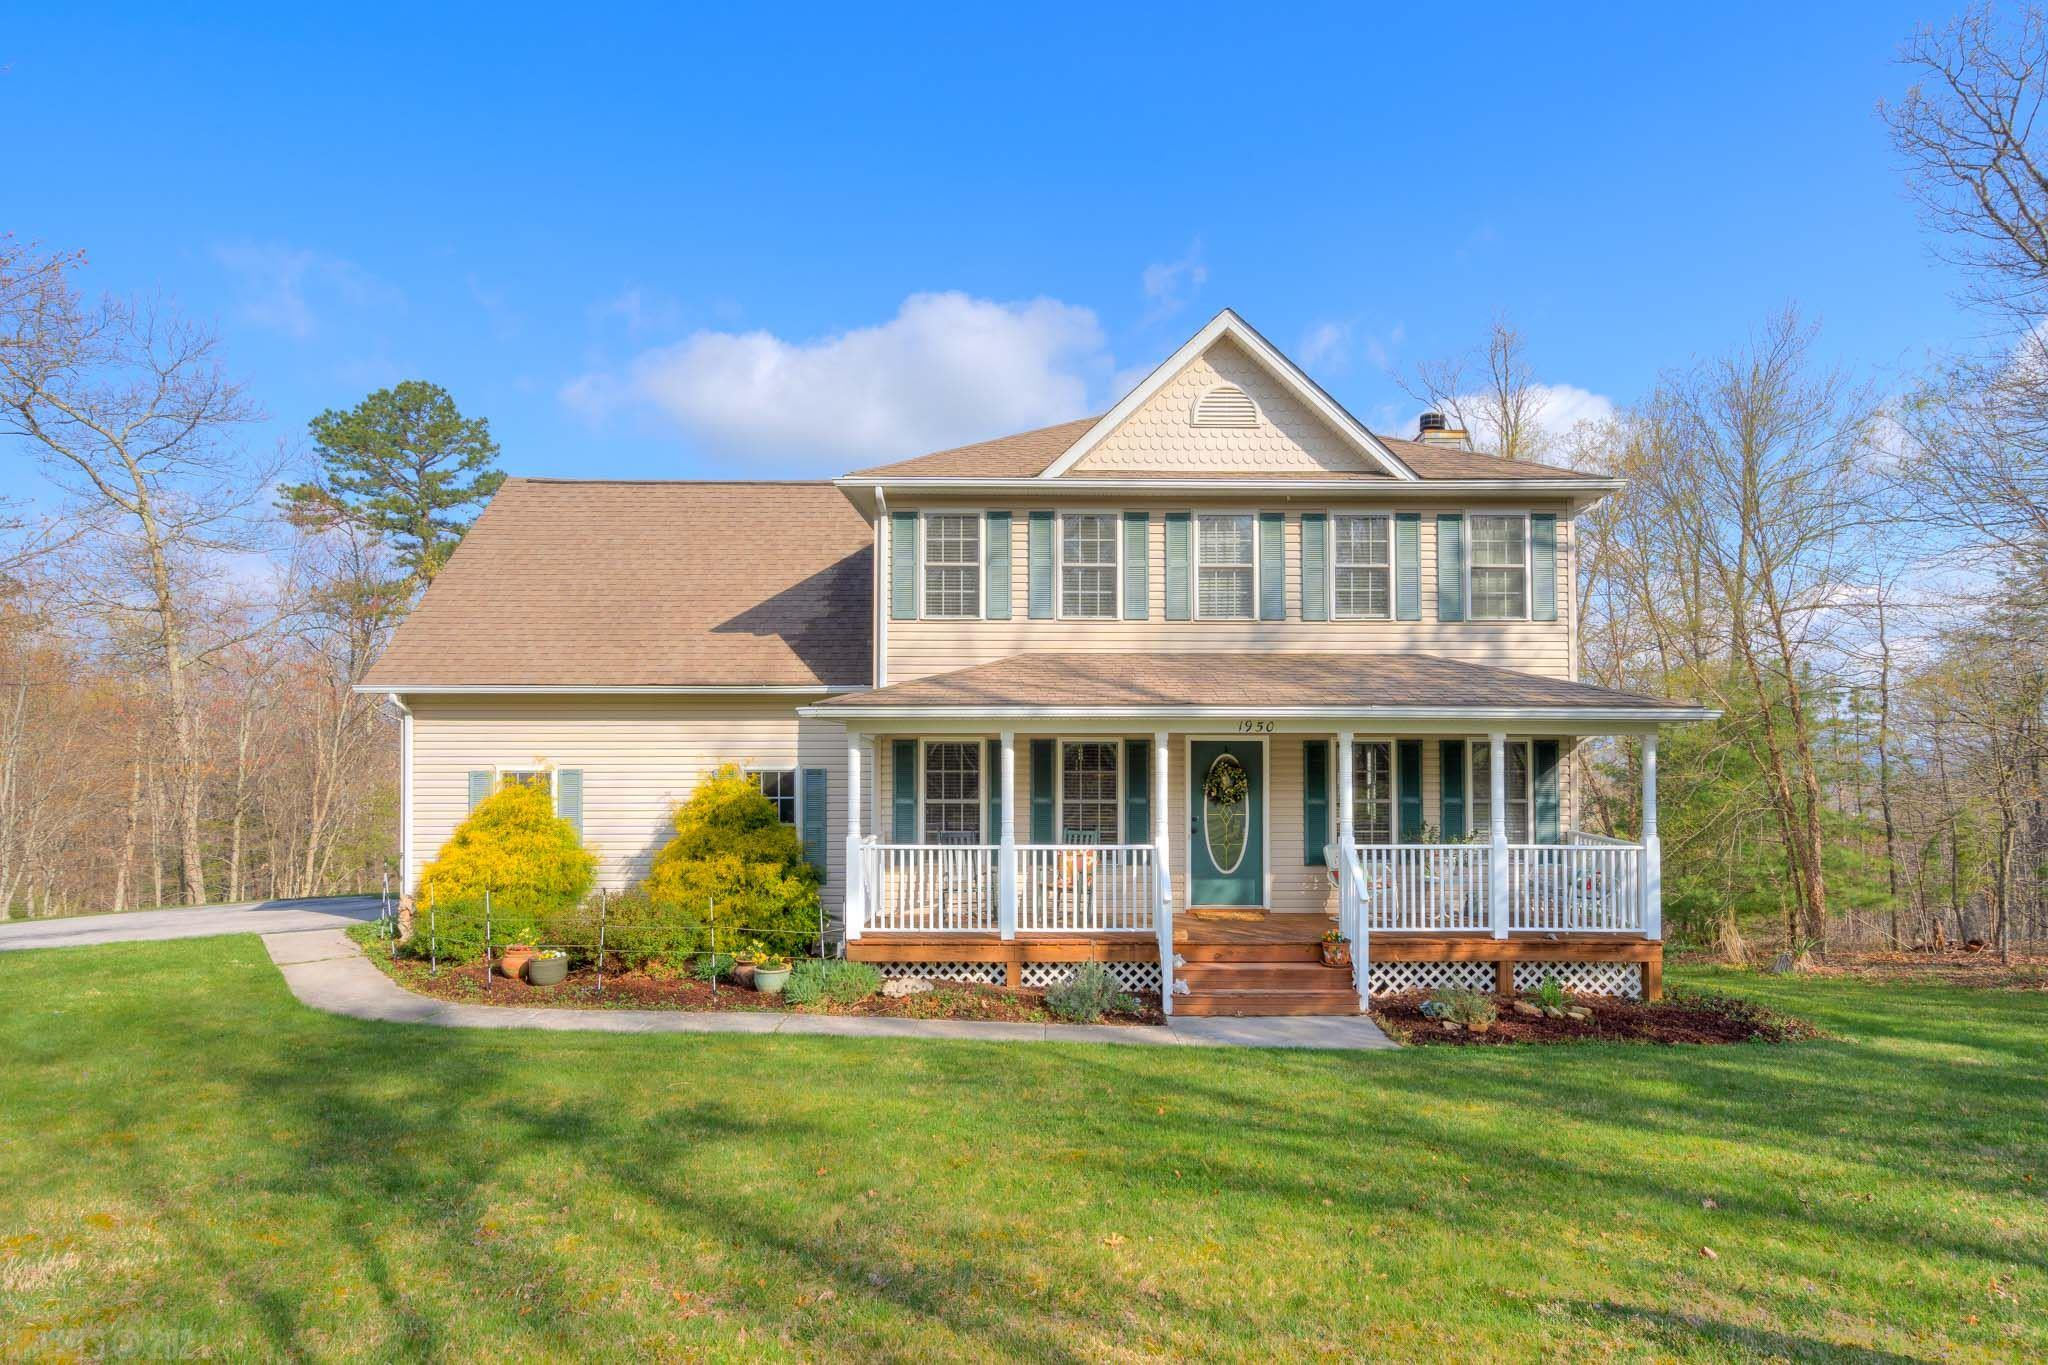 Come see this one-owner home in Blacksburg on over 2 acres with views!  4 bedrooms, 2.5 baths, double-attached garage and a full walk-out basement.  Hardwood floors throughout the main level with an open kitchen and living room.  Upstairs is the owner's suite and 3 additional bedrooms.  The basement features a family room, half bath and unfinished storage.  Relax on the covered front porch or back deck.  Situated in a quiet, wooded neighborhood just minutes to Montgomery Hospital, 460-Bypass, Downtown Blacksburg and VT.